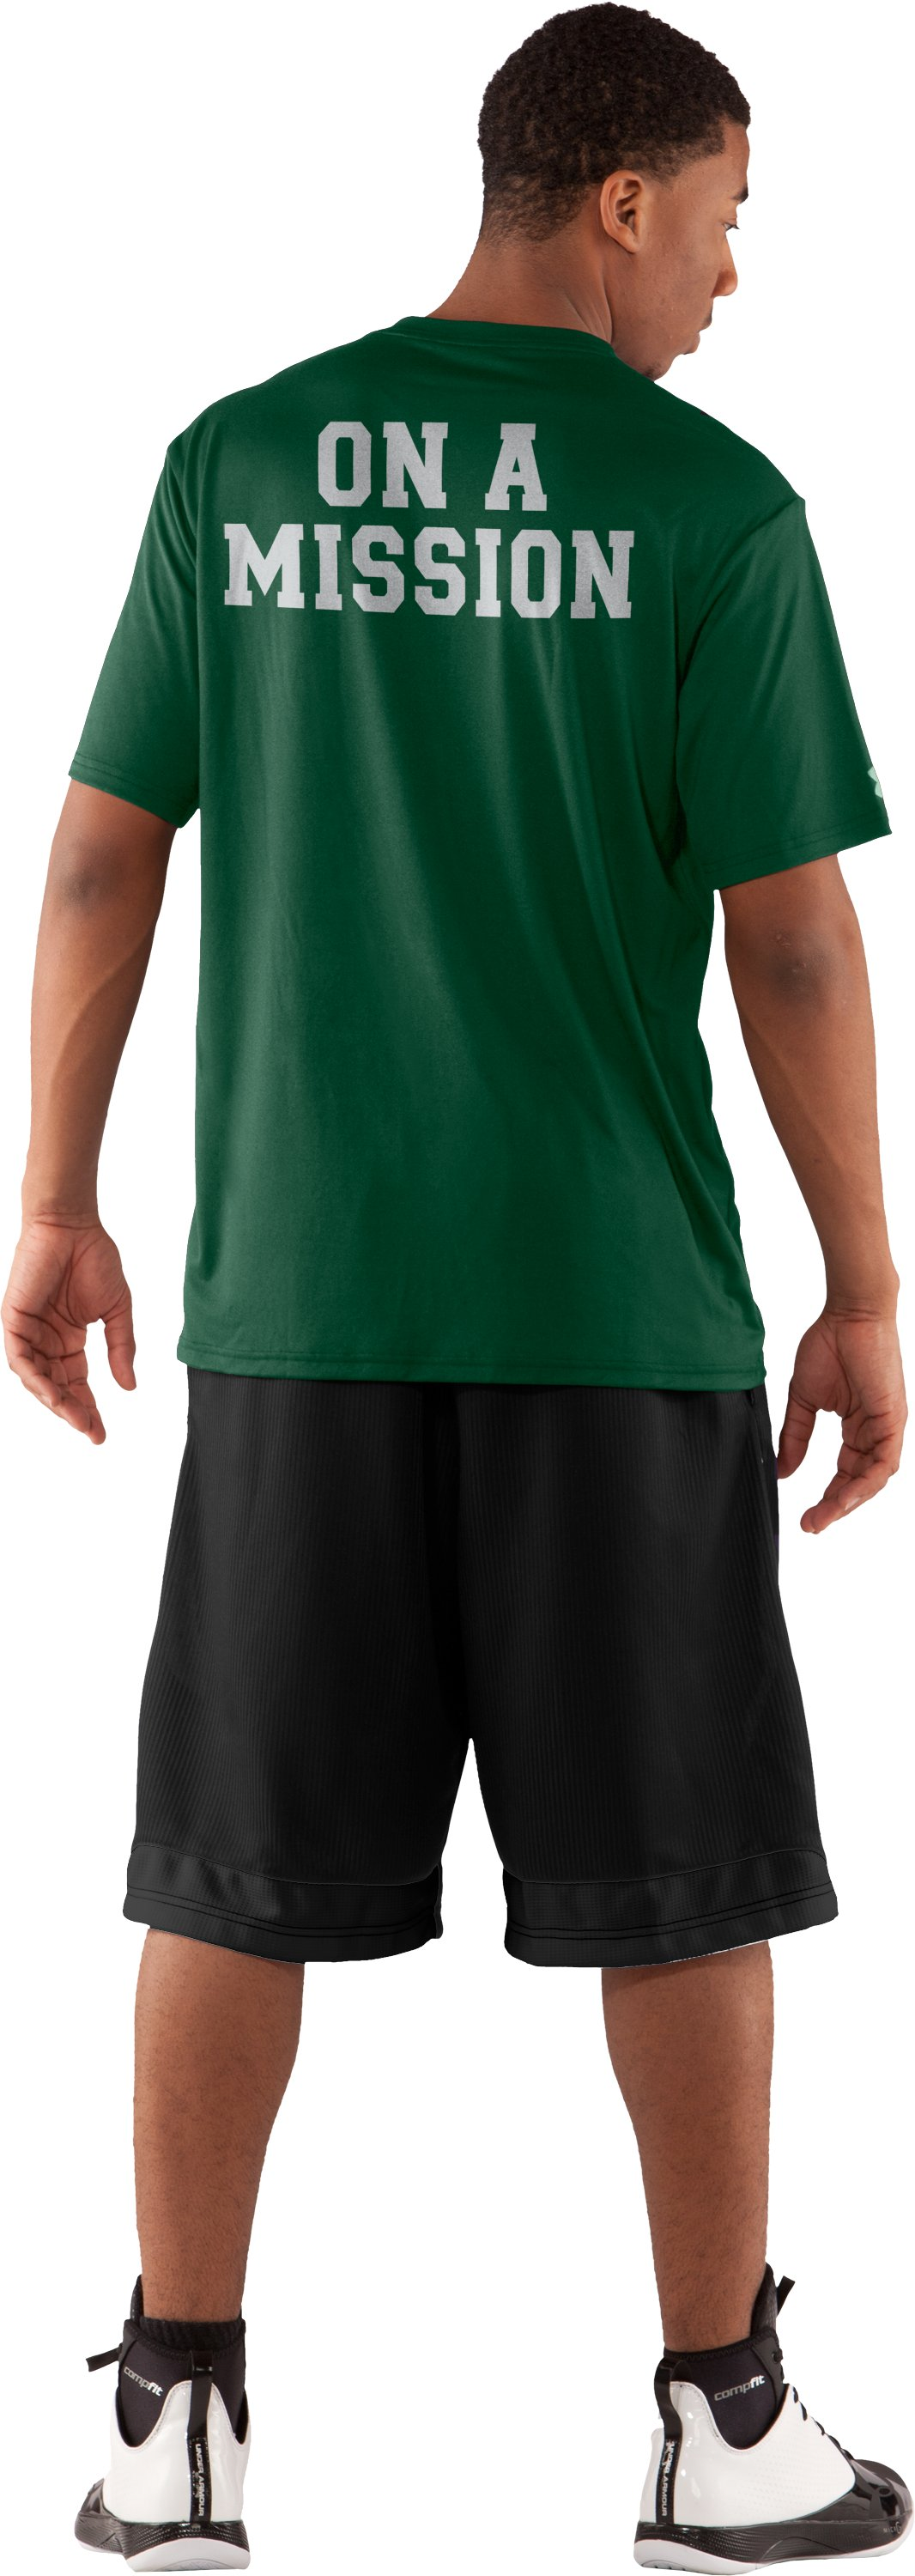 Men's MSU UA T-Shirt, Forest Green, Back